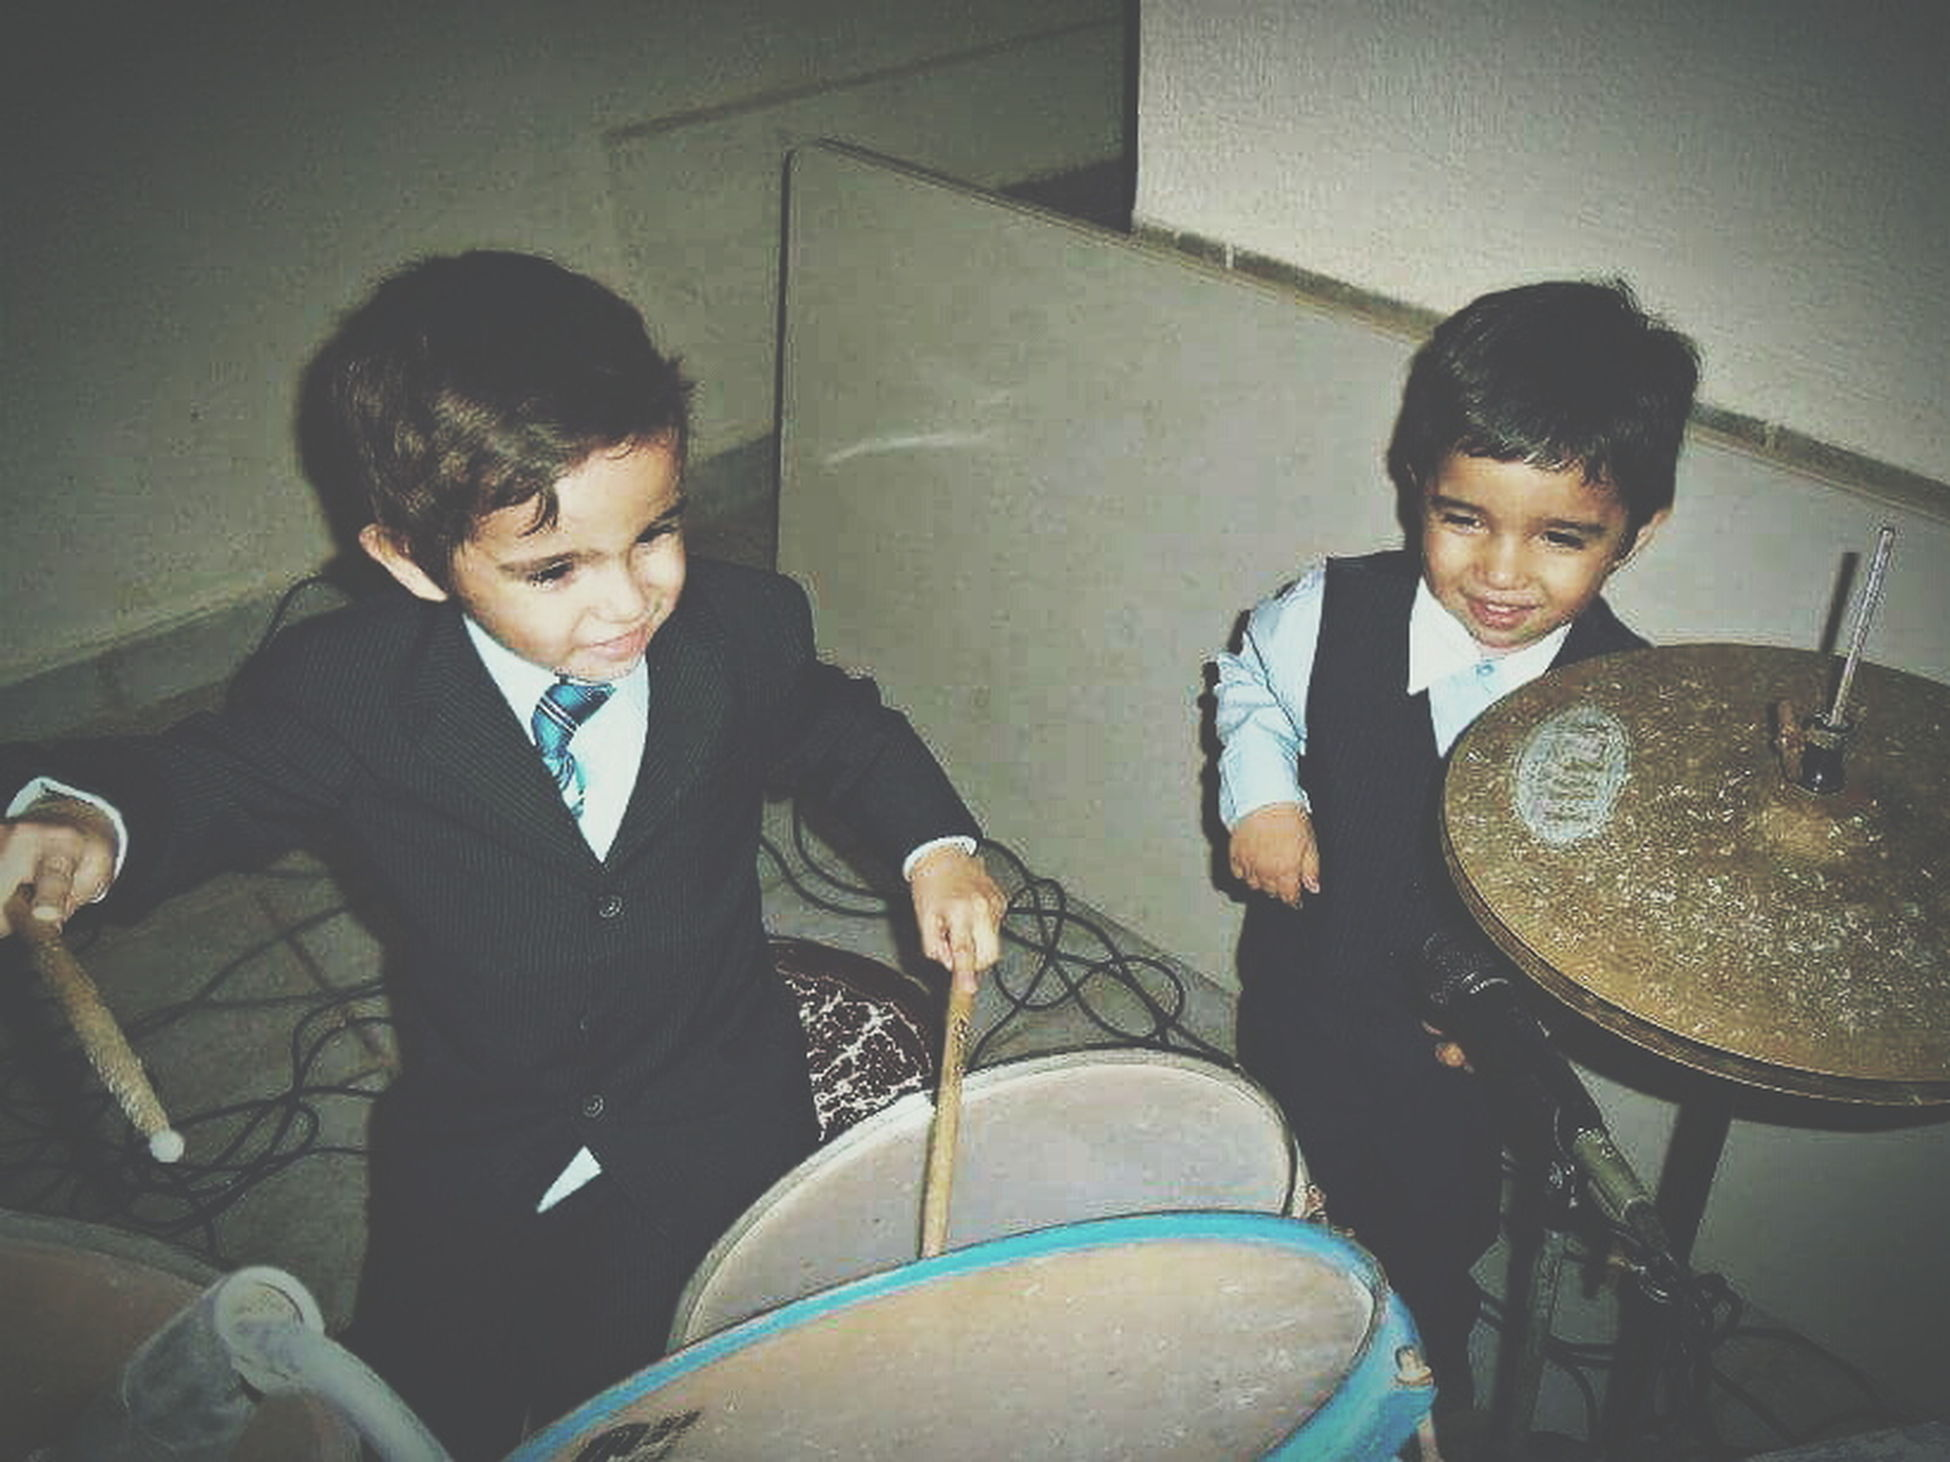 Childhoodunplugged Day Indoors  Arts Culture And Entertainment Enjoying Life Kids Being Kids Drummer Musician Kids Having Fun Music Children Drumstick Cimbal Drum - Percussion Instrument Party Teamwork Rock Stars Childhood Memories Playing Music Lifestyles Music Togheter Partners In Crime EyeEmNewHere First Eyeem Photo